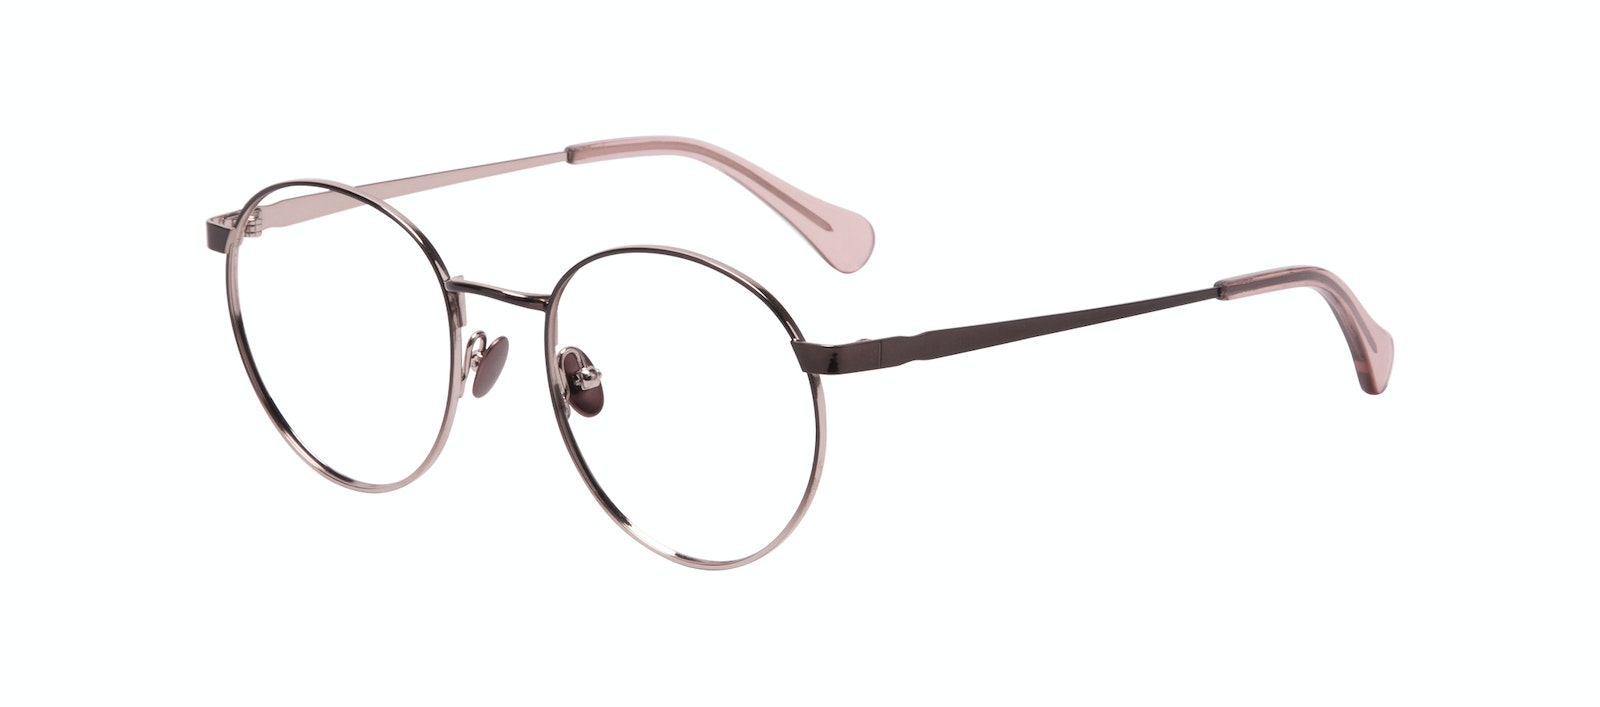 Affordable Fashion Glasses Round Eyeglasses Women Foundry Pink Terra Tilt